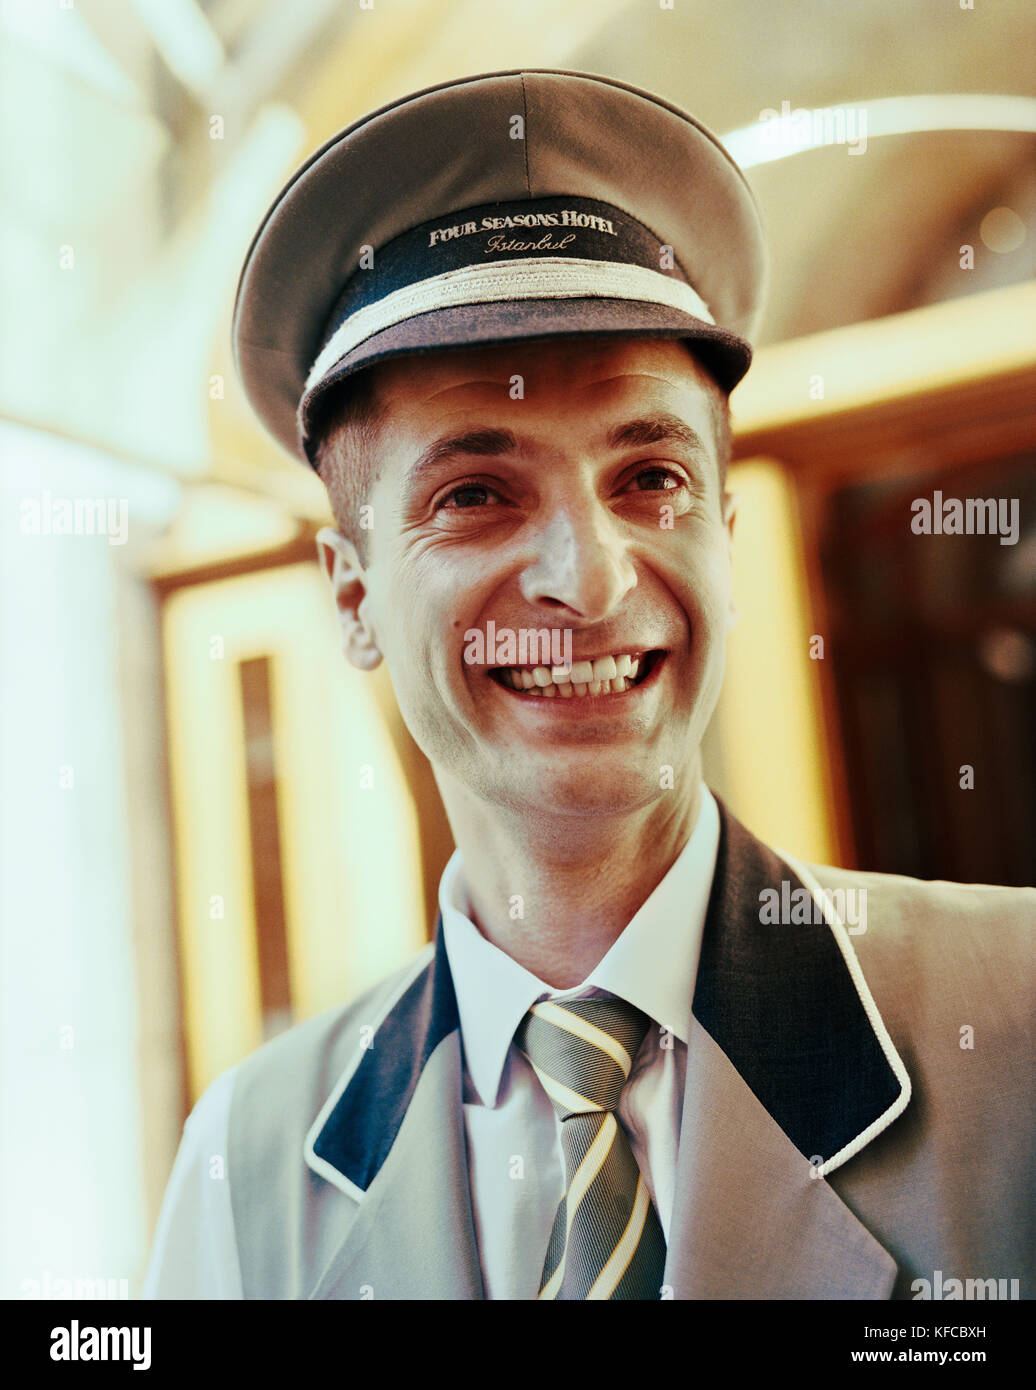 TURKEY, Istanbul, close-up of a smiling mid adult bellboy at the Four Seasons Hotel. - Stock Image